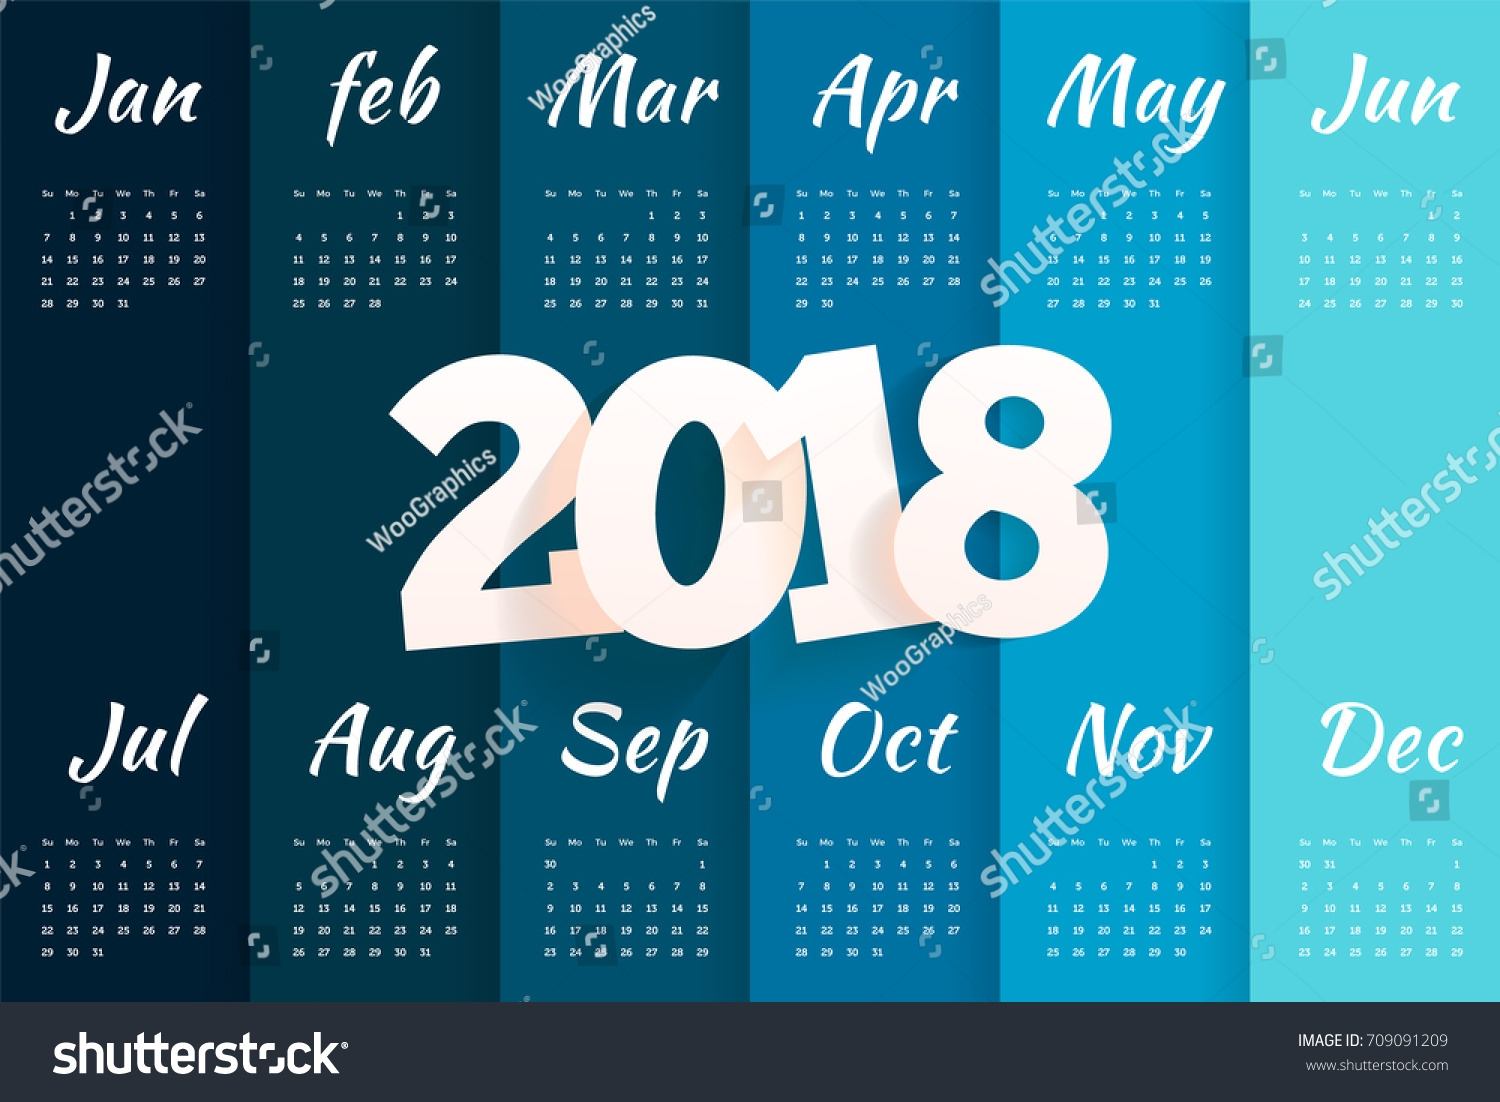 2018 calendar template stylish simple minimal calendar stock vector 2018 Stylish Calendar Templates erdferdf